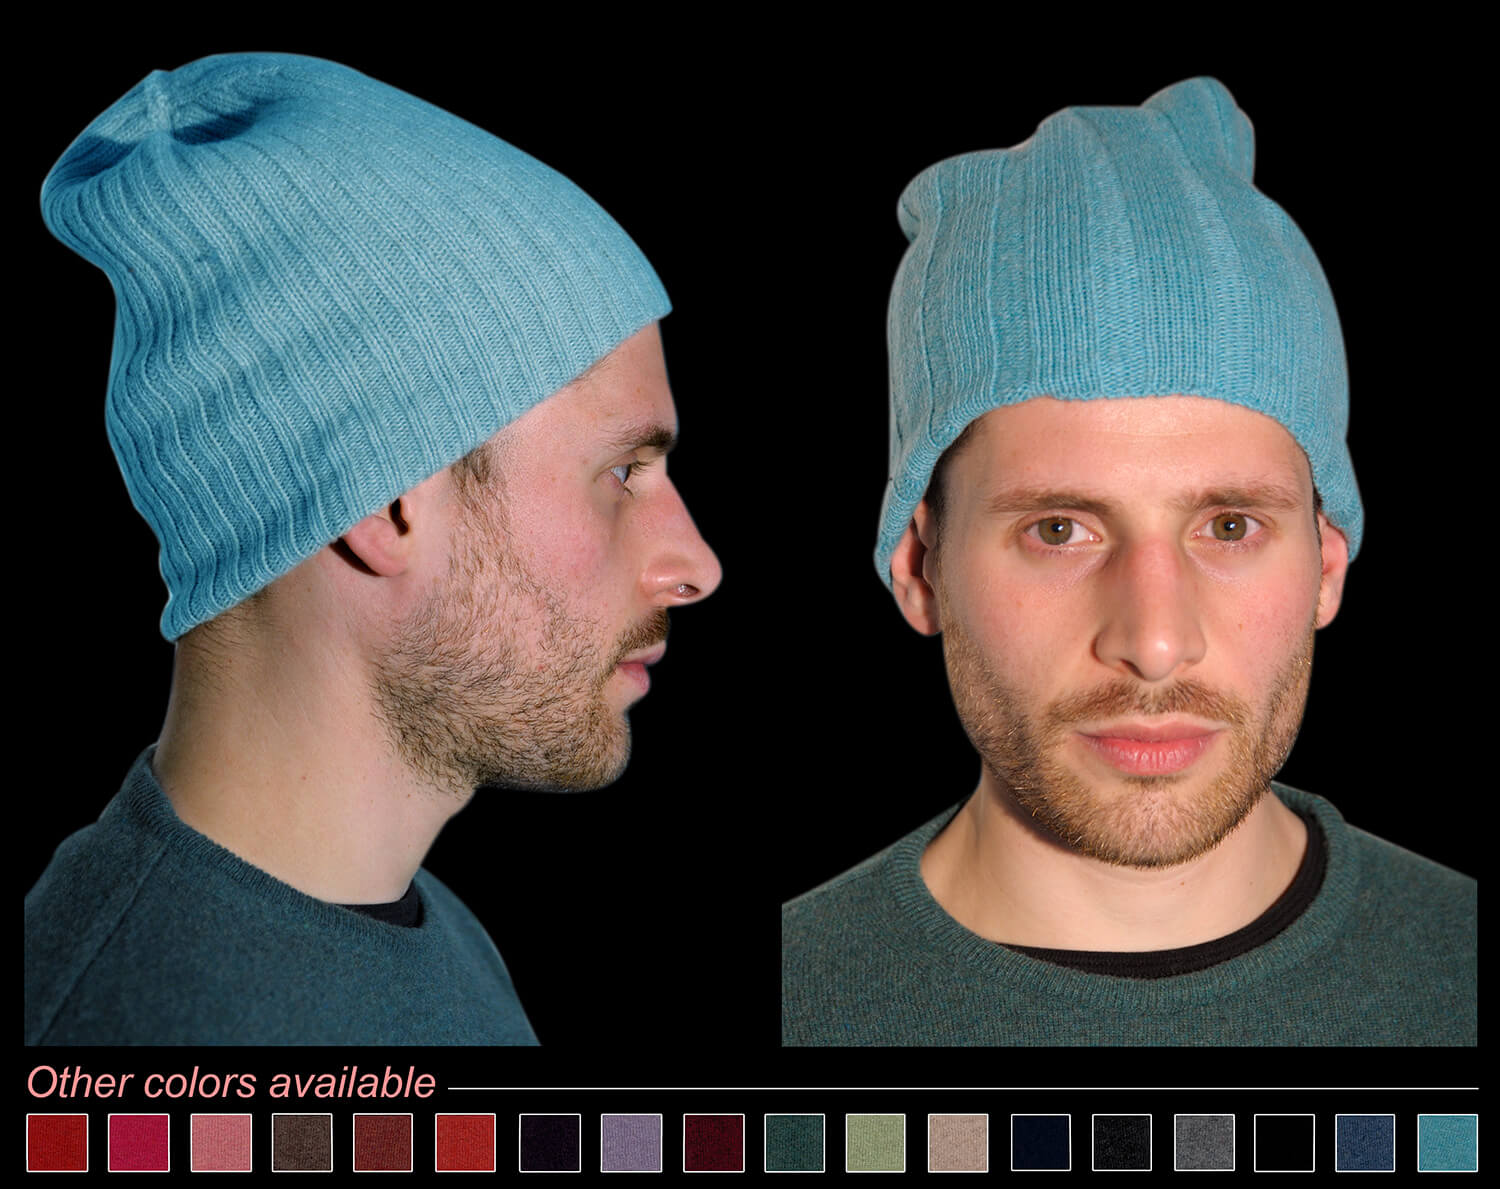 Man hat color turquoise code 119 and 298